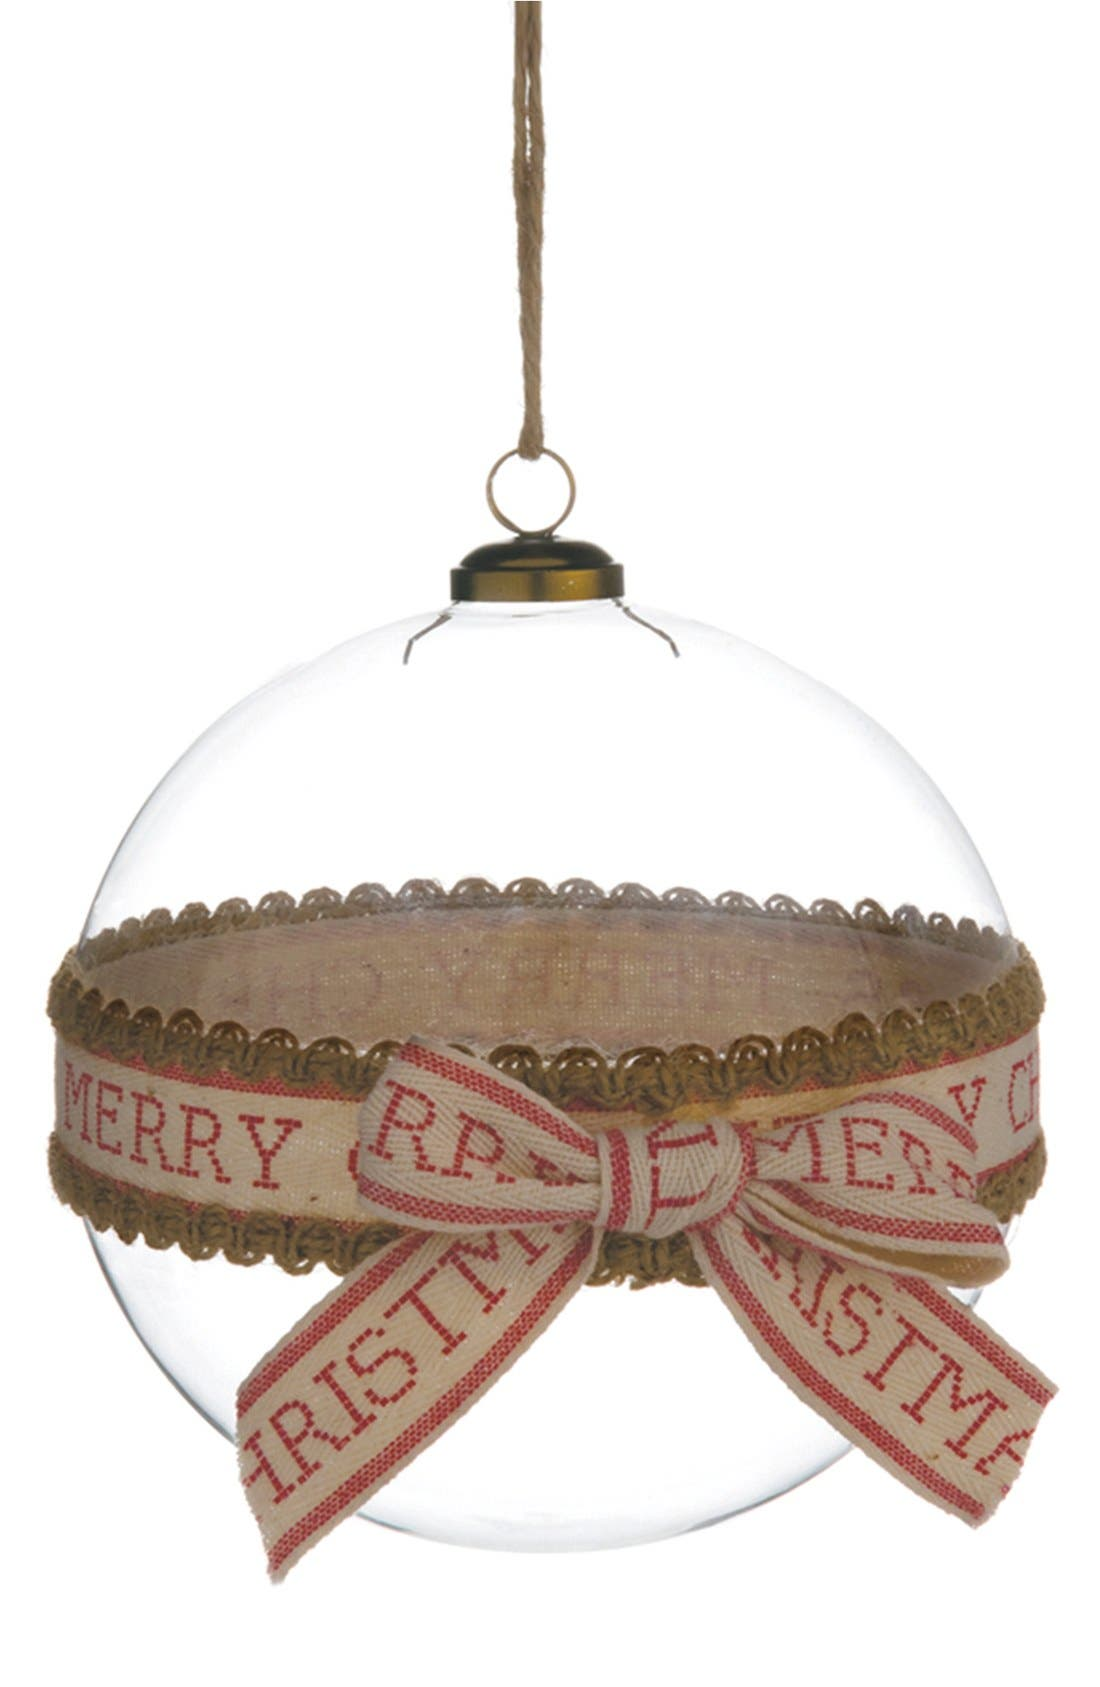 Main Image - ALLSTATE 'Merry Christmas' Glass Ball Ornament